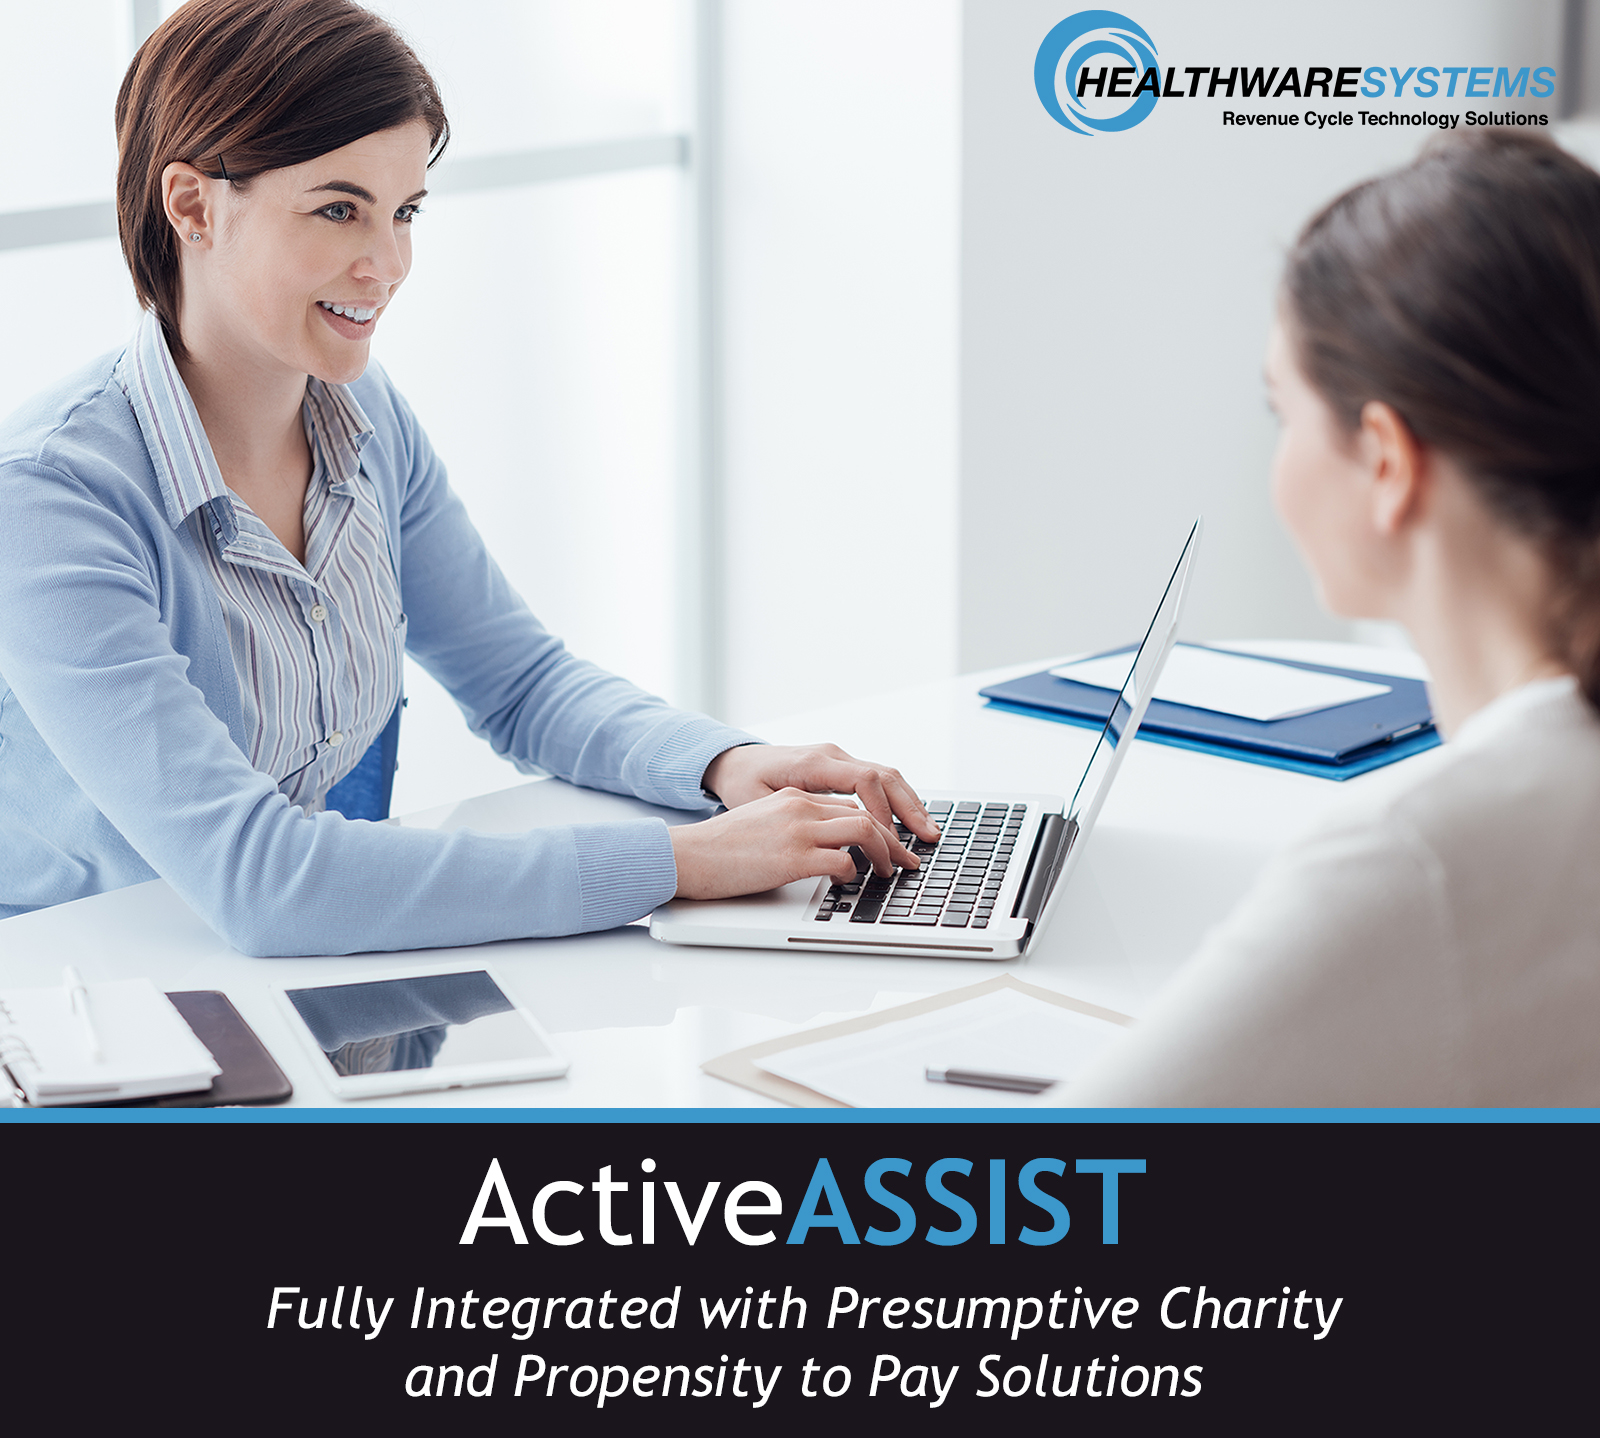 A financial counselor helps a patient, and these words appear: ActiveASSIST Fully Integrated with Presumptive Charity and Propensity to Pay Solutions